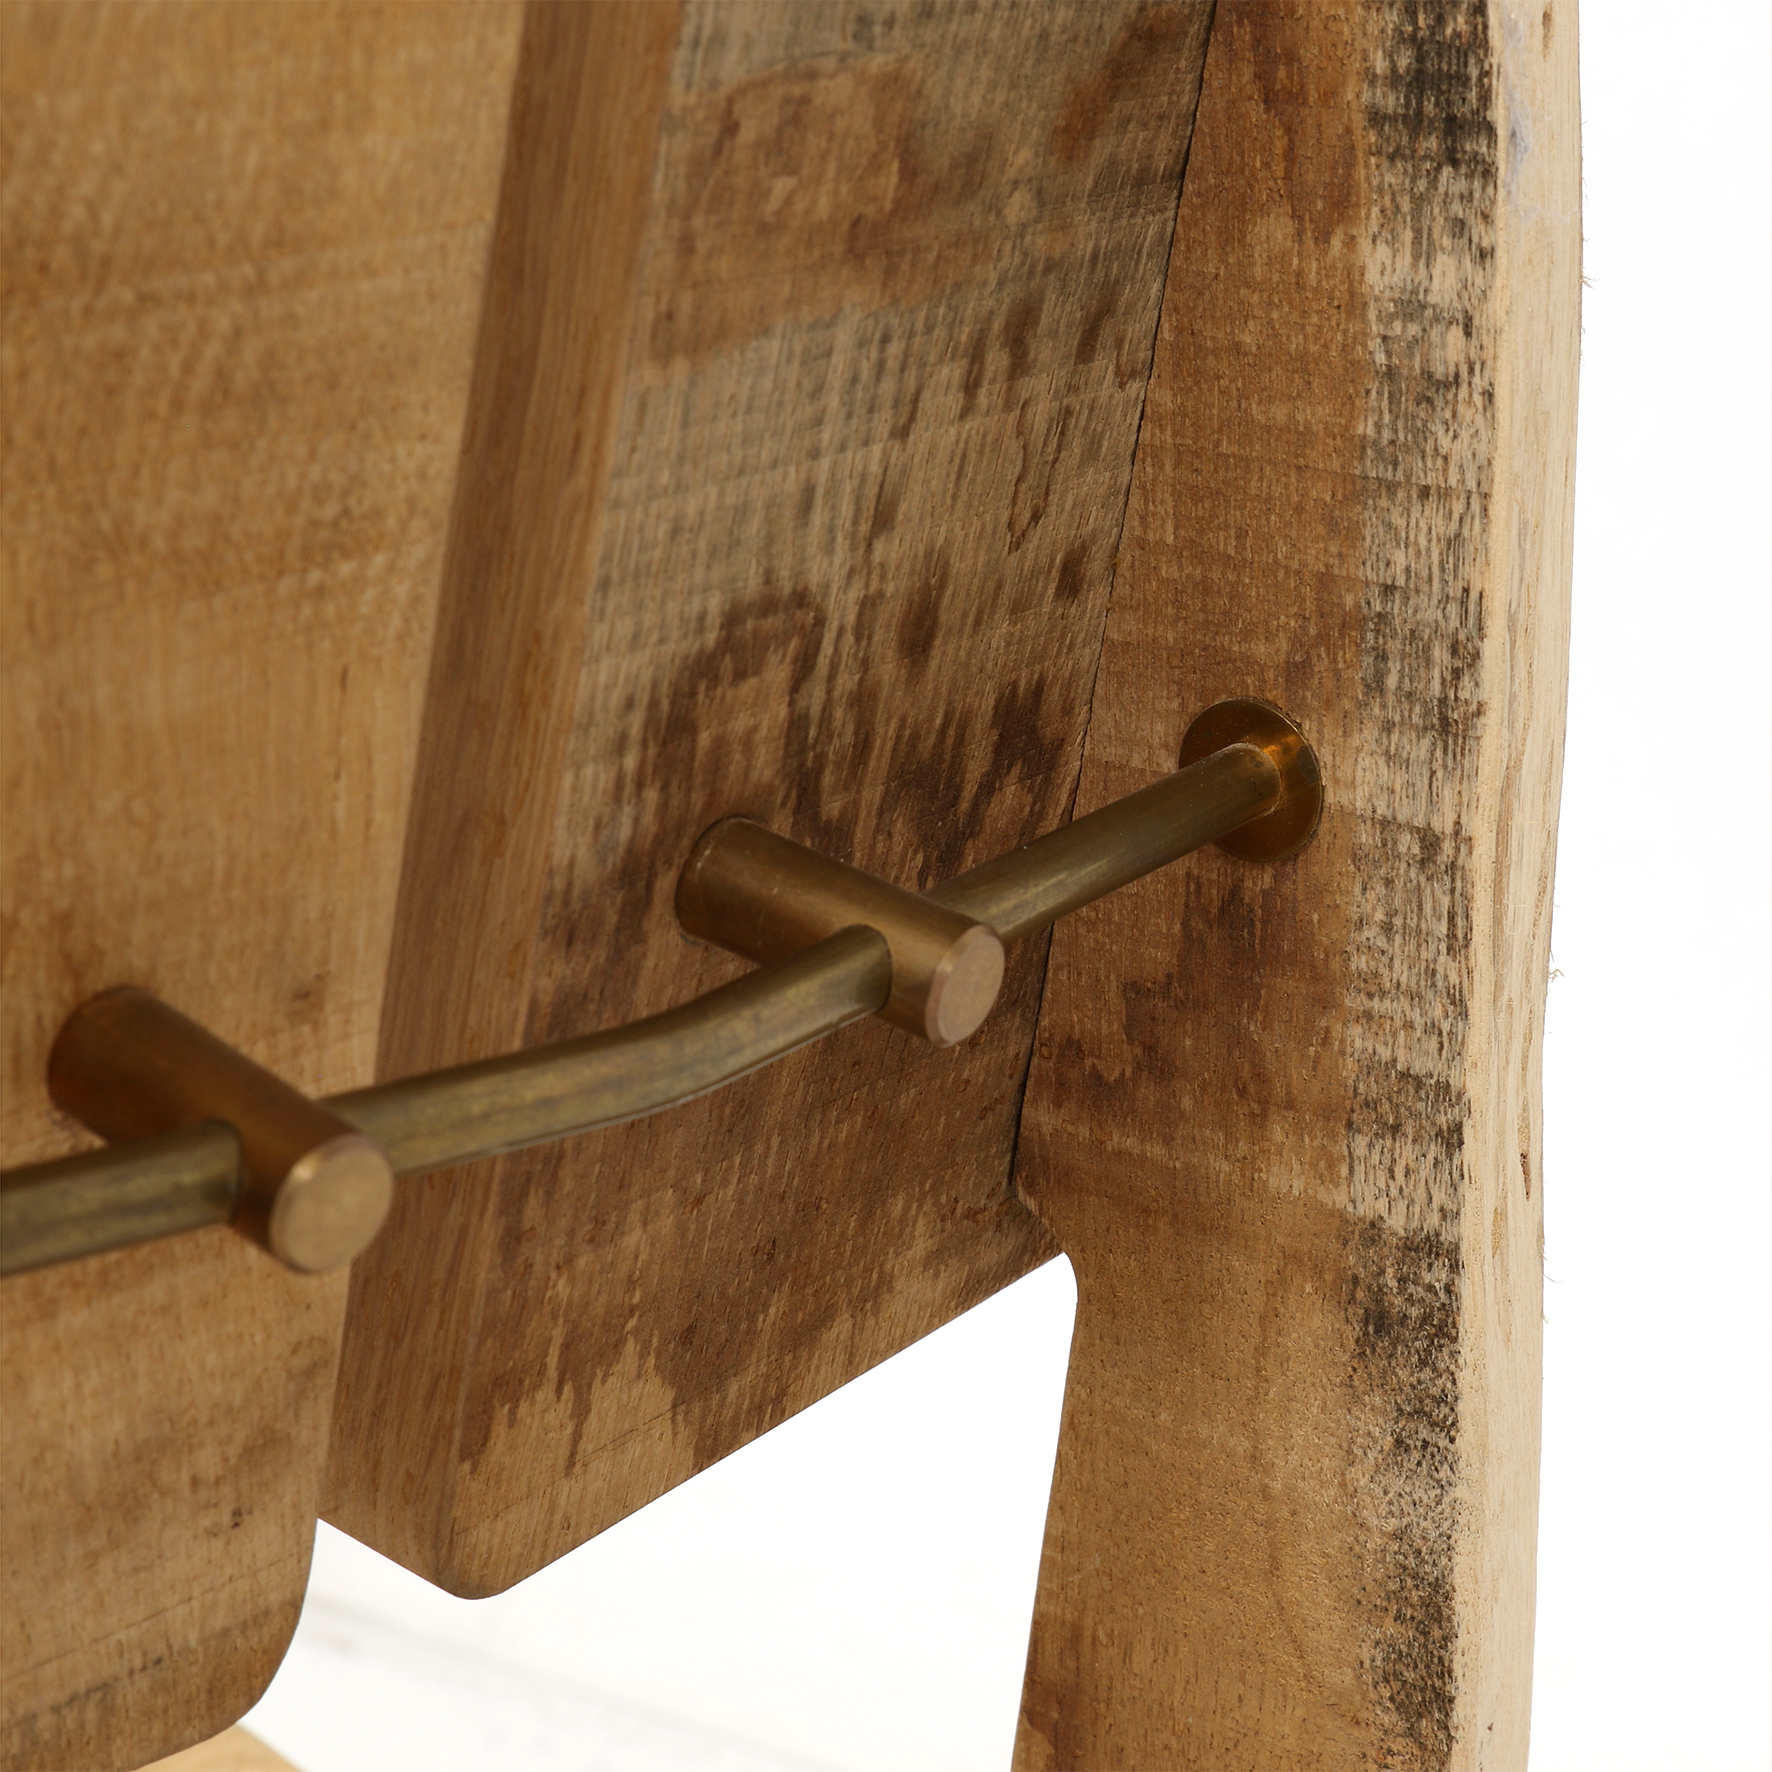 ieuwe-boomstamstoel- detail 1 - new tree trunk chair